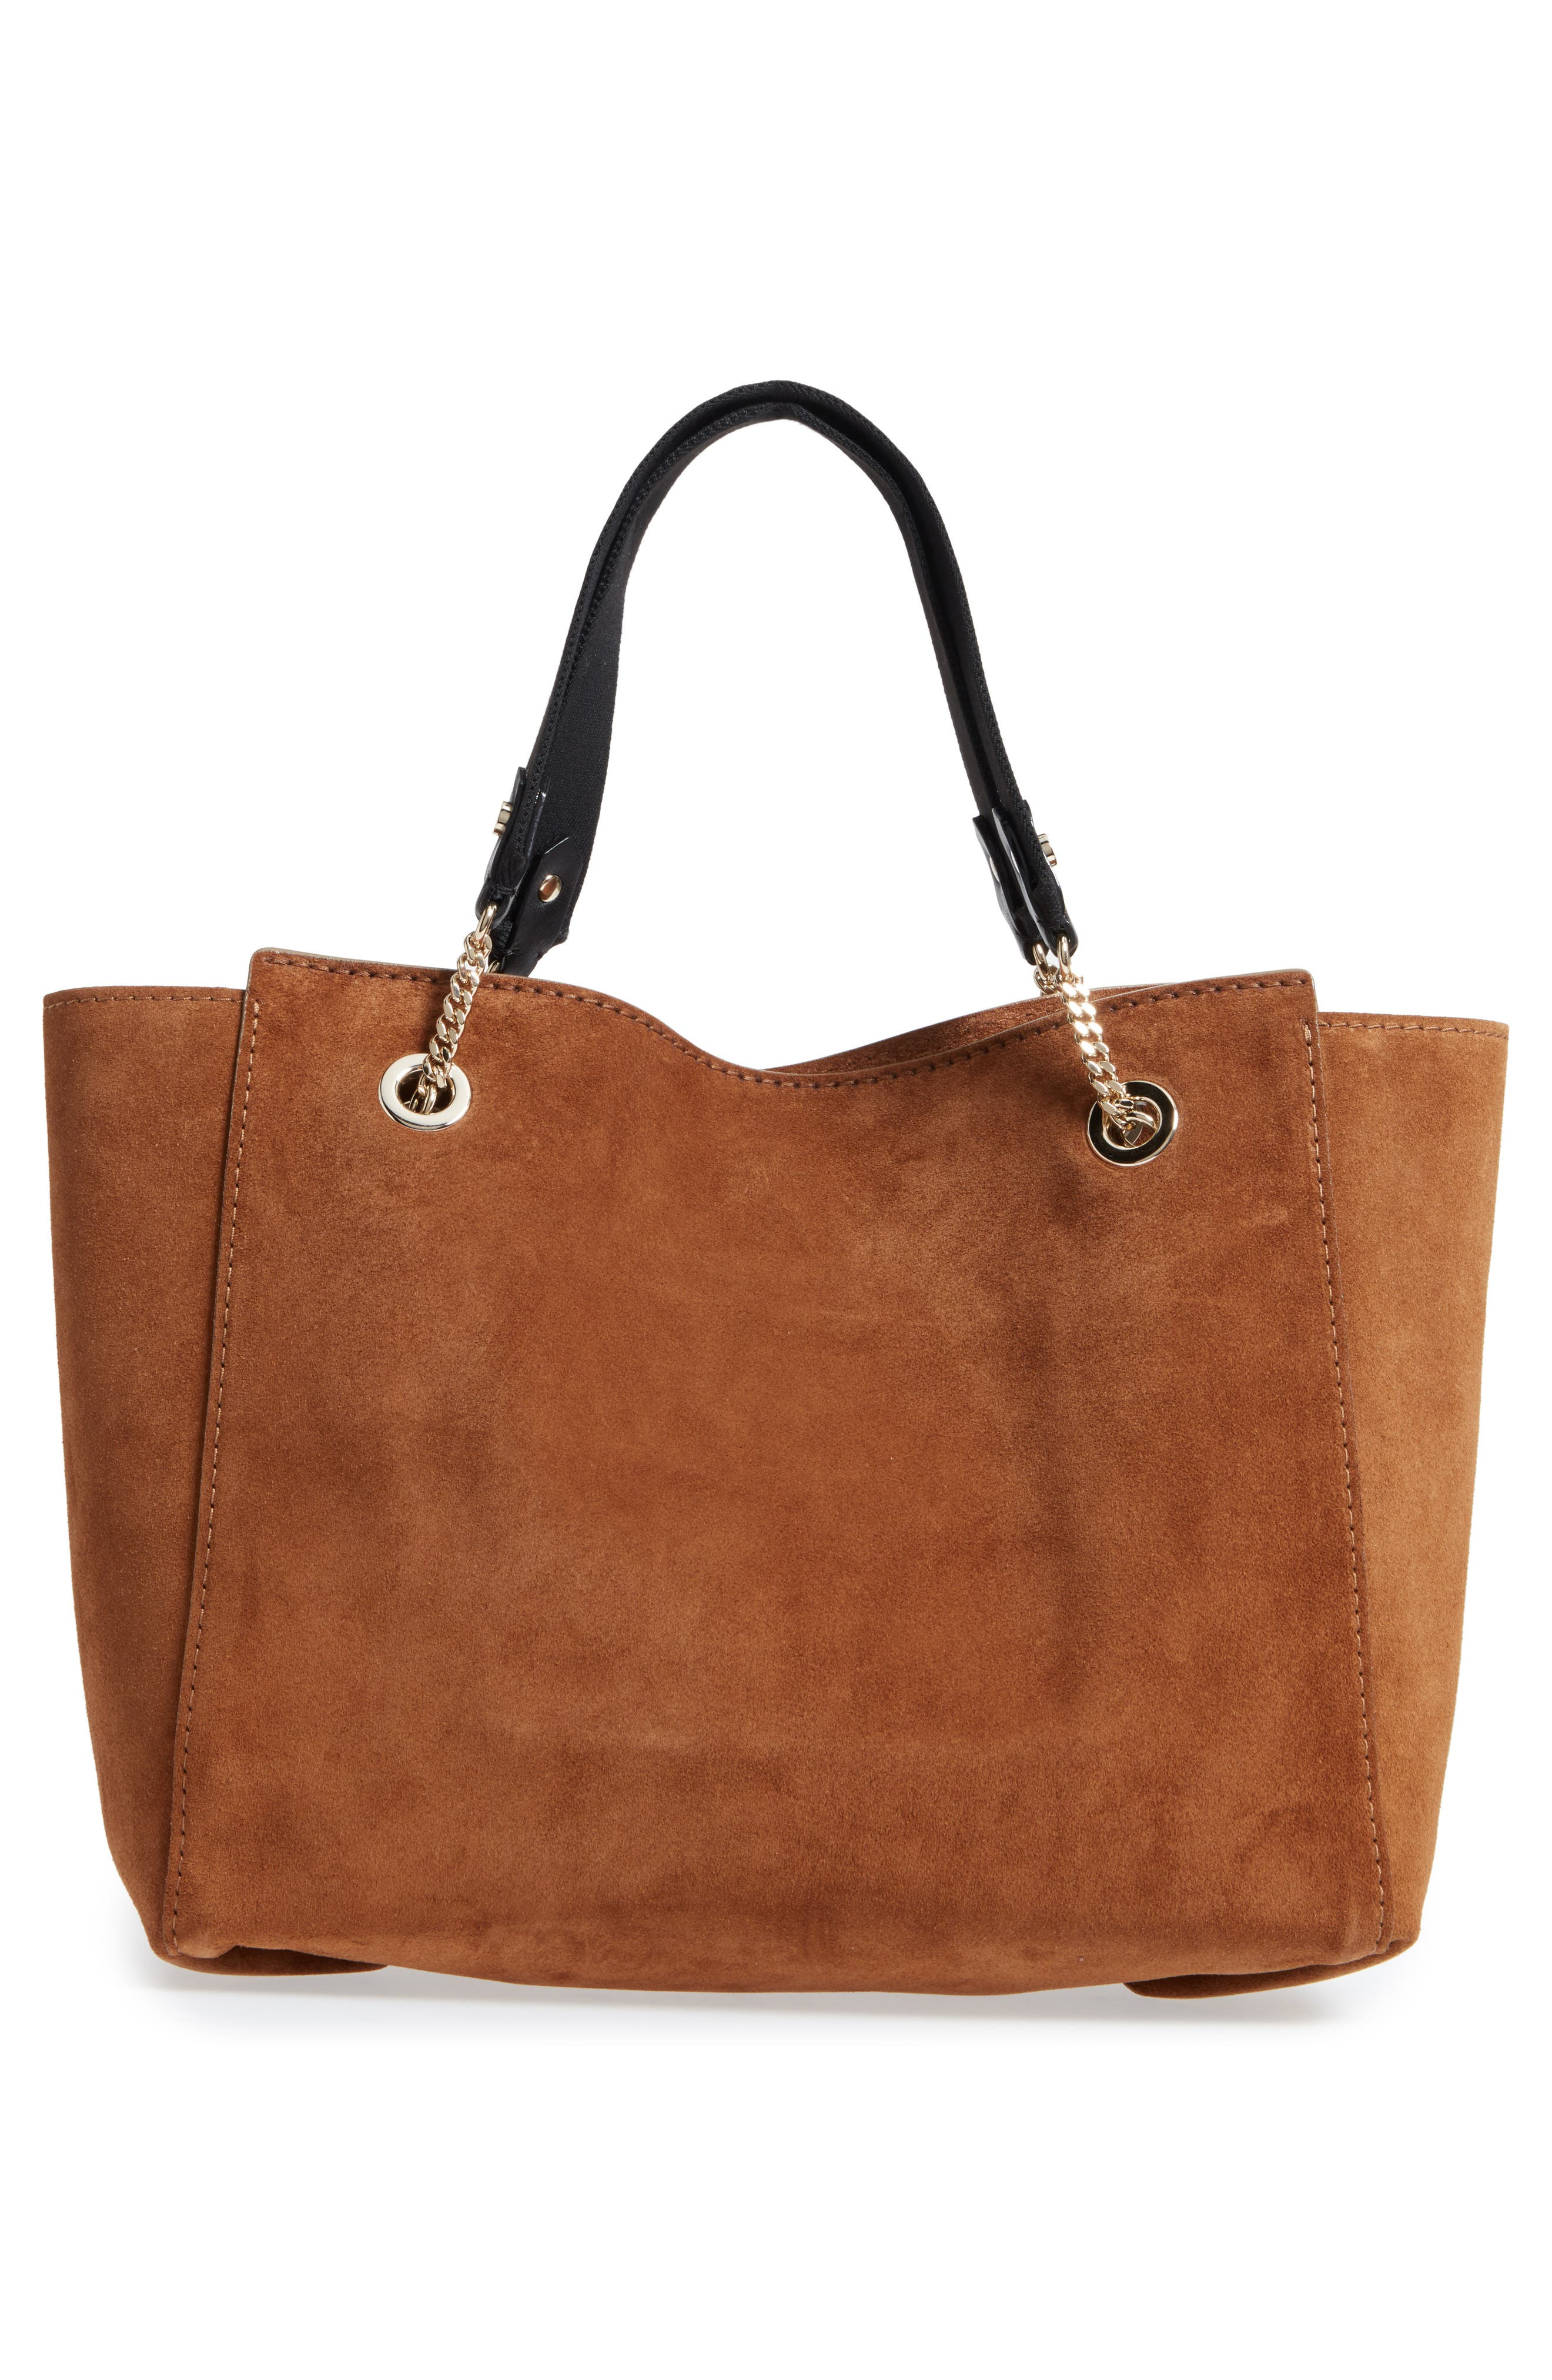 Flo Suede Tote,                             Alternate thumbnail 3, color,                             210